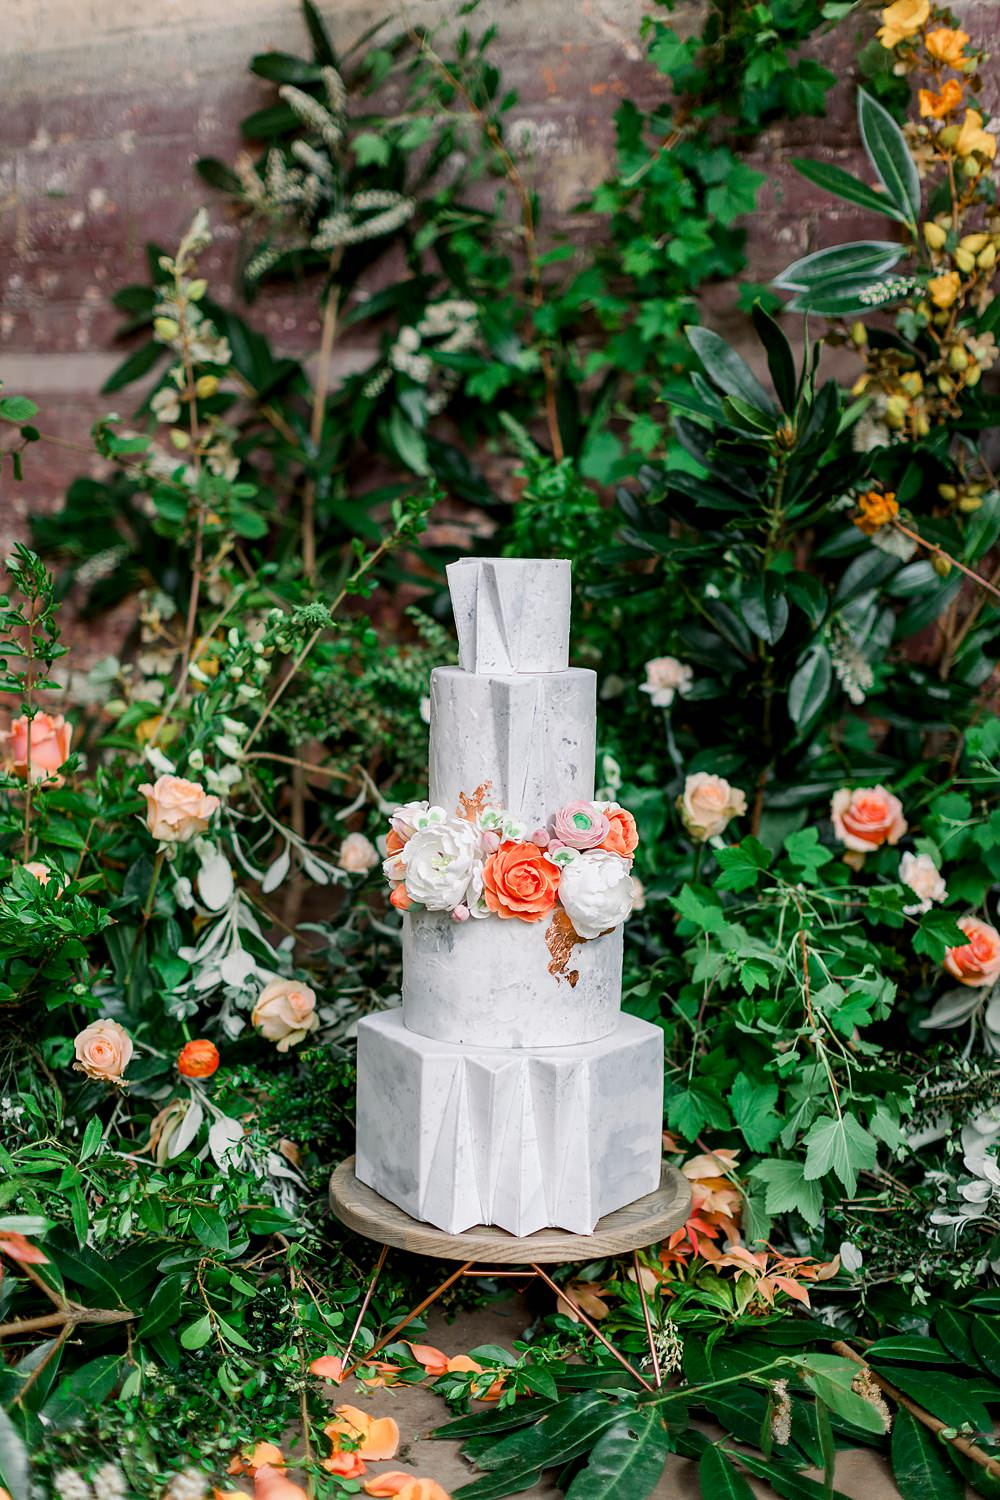 Grey Cake Concrete Marble Stone Wire Stand Orange Flowers Geometric Modern Greenery Foliage Backdrop Natural Boho Industrial Wedding Ideas Jo Bradbury Photography